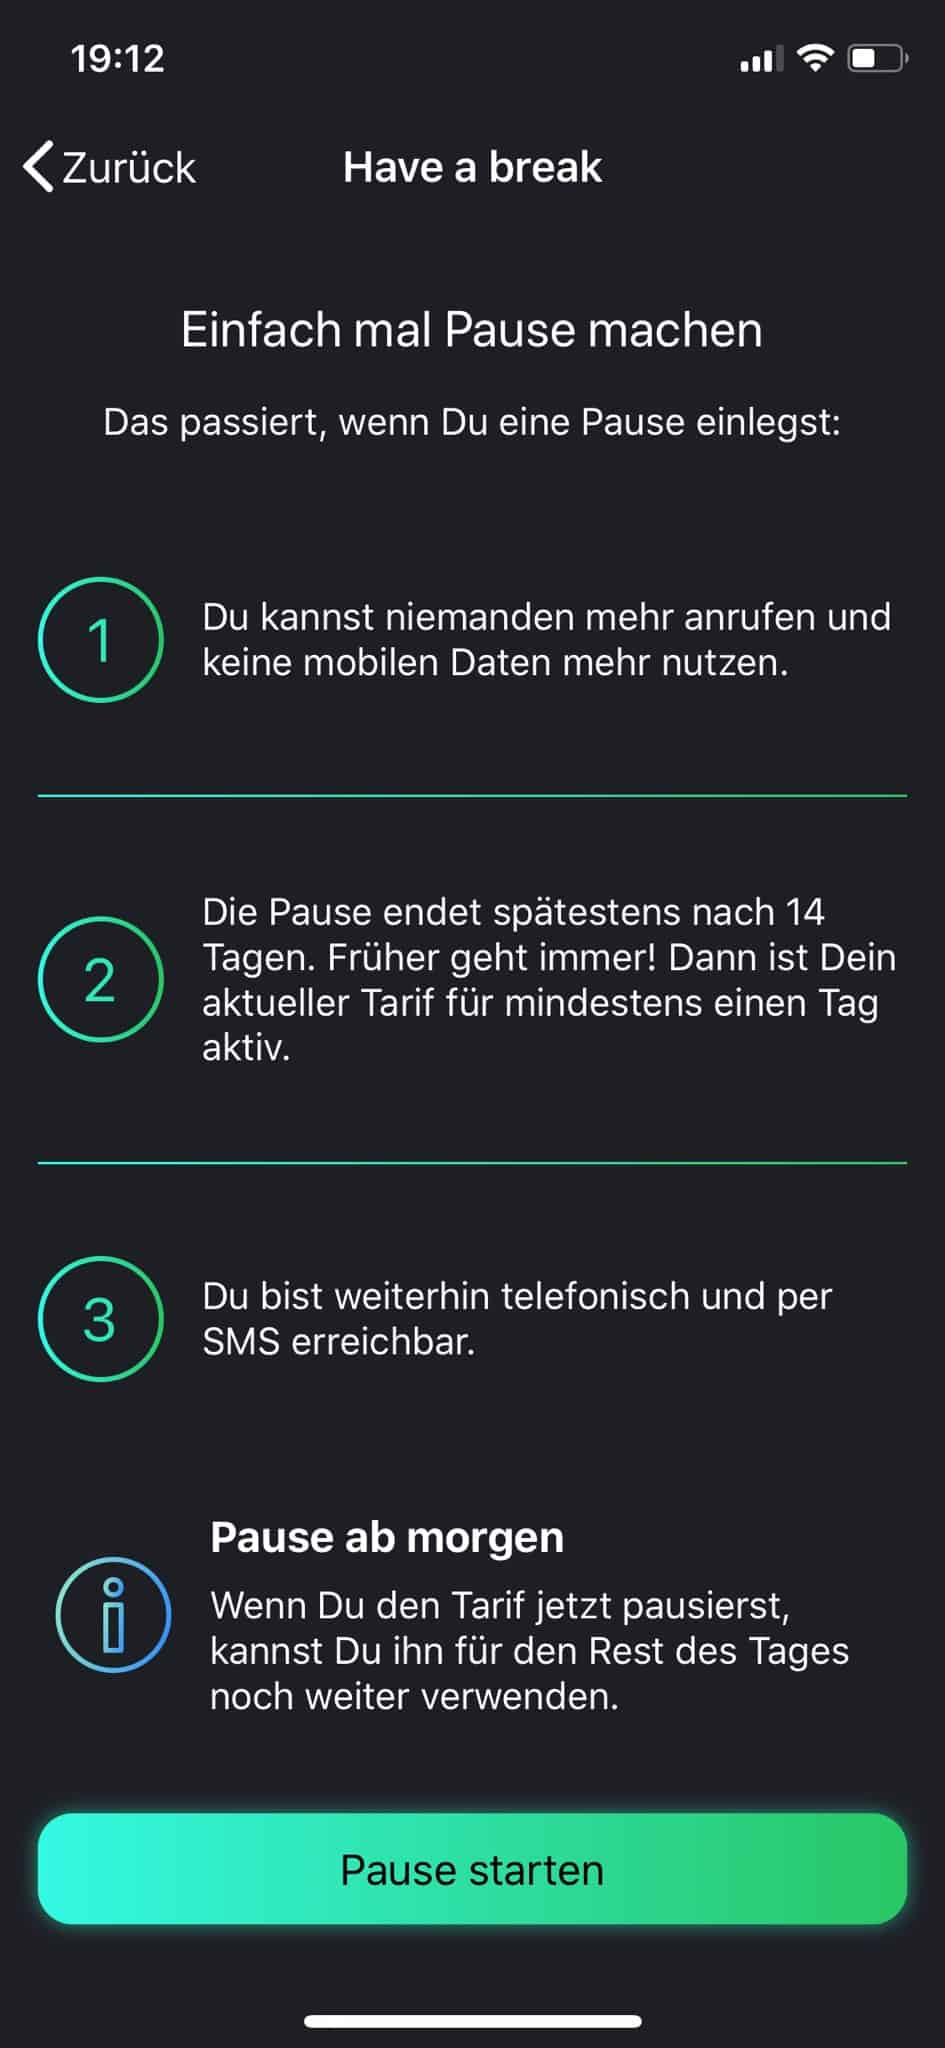 freenet FUNK - Smartphone-App - Have a break - Tarif pausieren